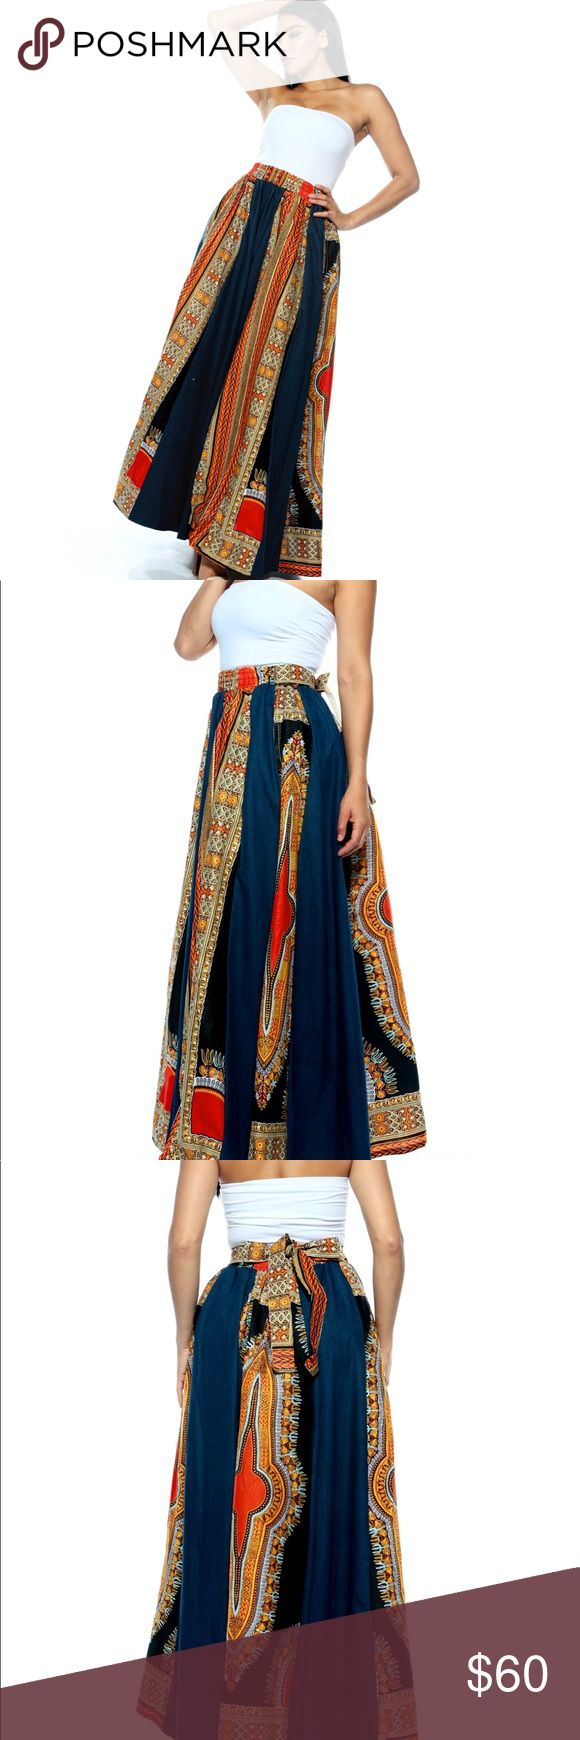 New❤️ African Print Dashiki Skirt This beautiful ankle length Dashiki skirt is a must have for any woman who wants to dazzle. Intricately designed, its a perfect attire for church, casual , or even meetups and dates. Order yours and look beautiful as you have always been.   Colors: Beautiful bold colors of blue jean, orange,red, and black   One Size fits most FT Inc Skirts Maxi